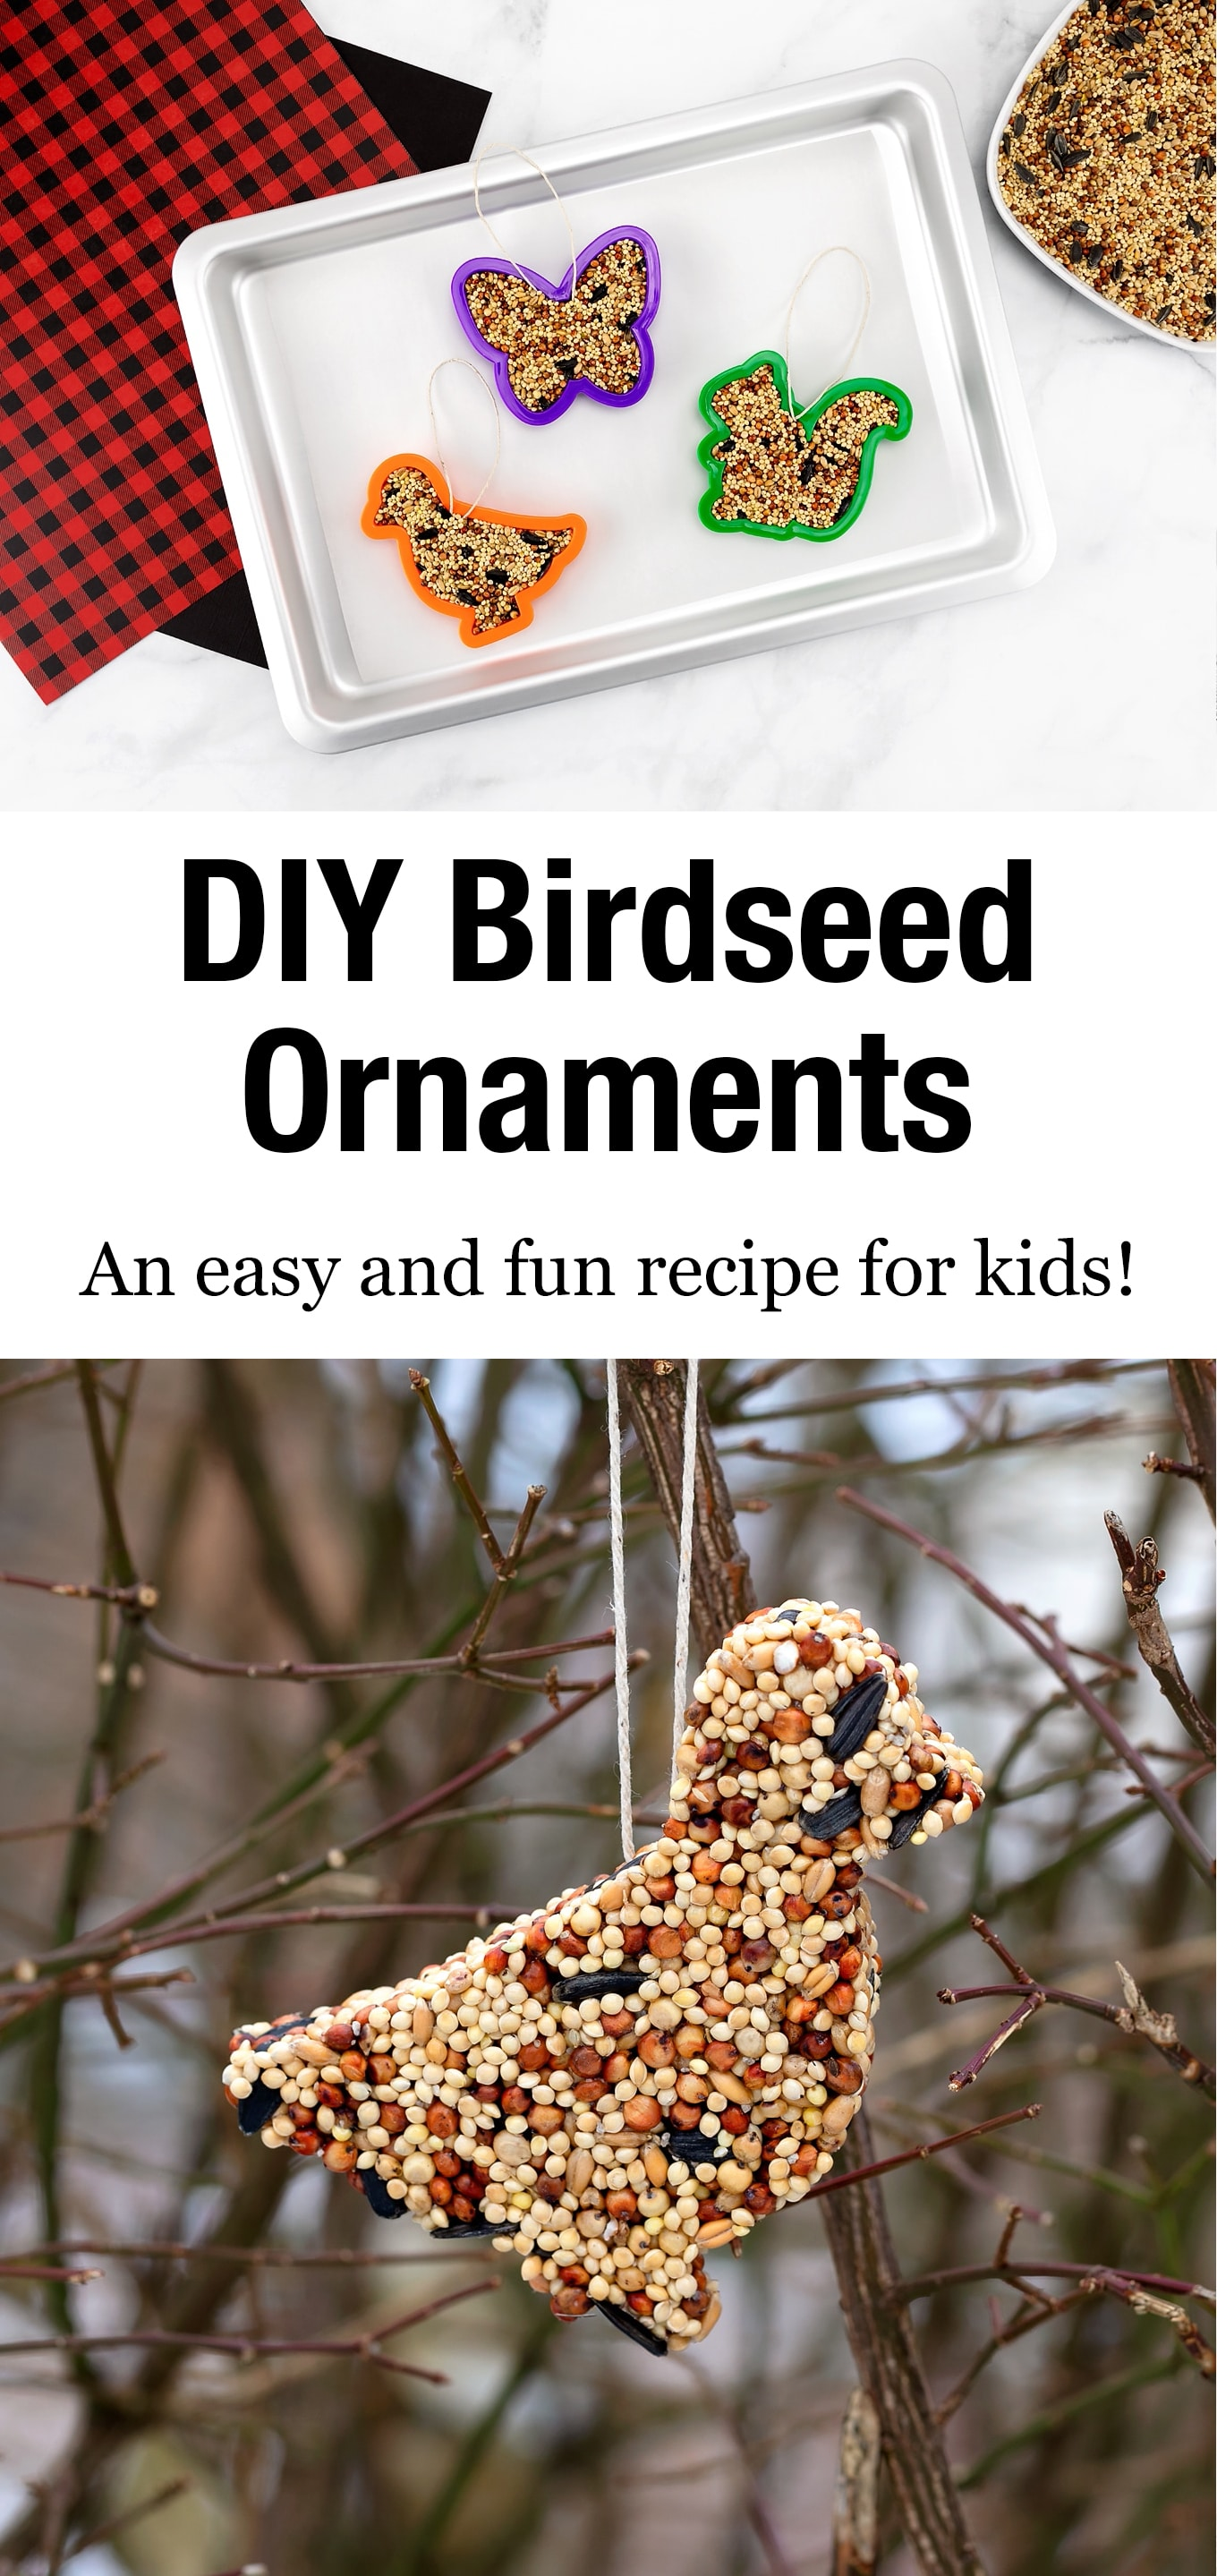 These easy DIY Birdseed Ornaments attract a wide variety of wild birds and only need 3 ingredients. Perfect for kids to make at home or in the classroom! #birdseedornaments #wintercrafts #naturecrafts via @firefliesandmudpies